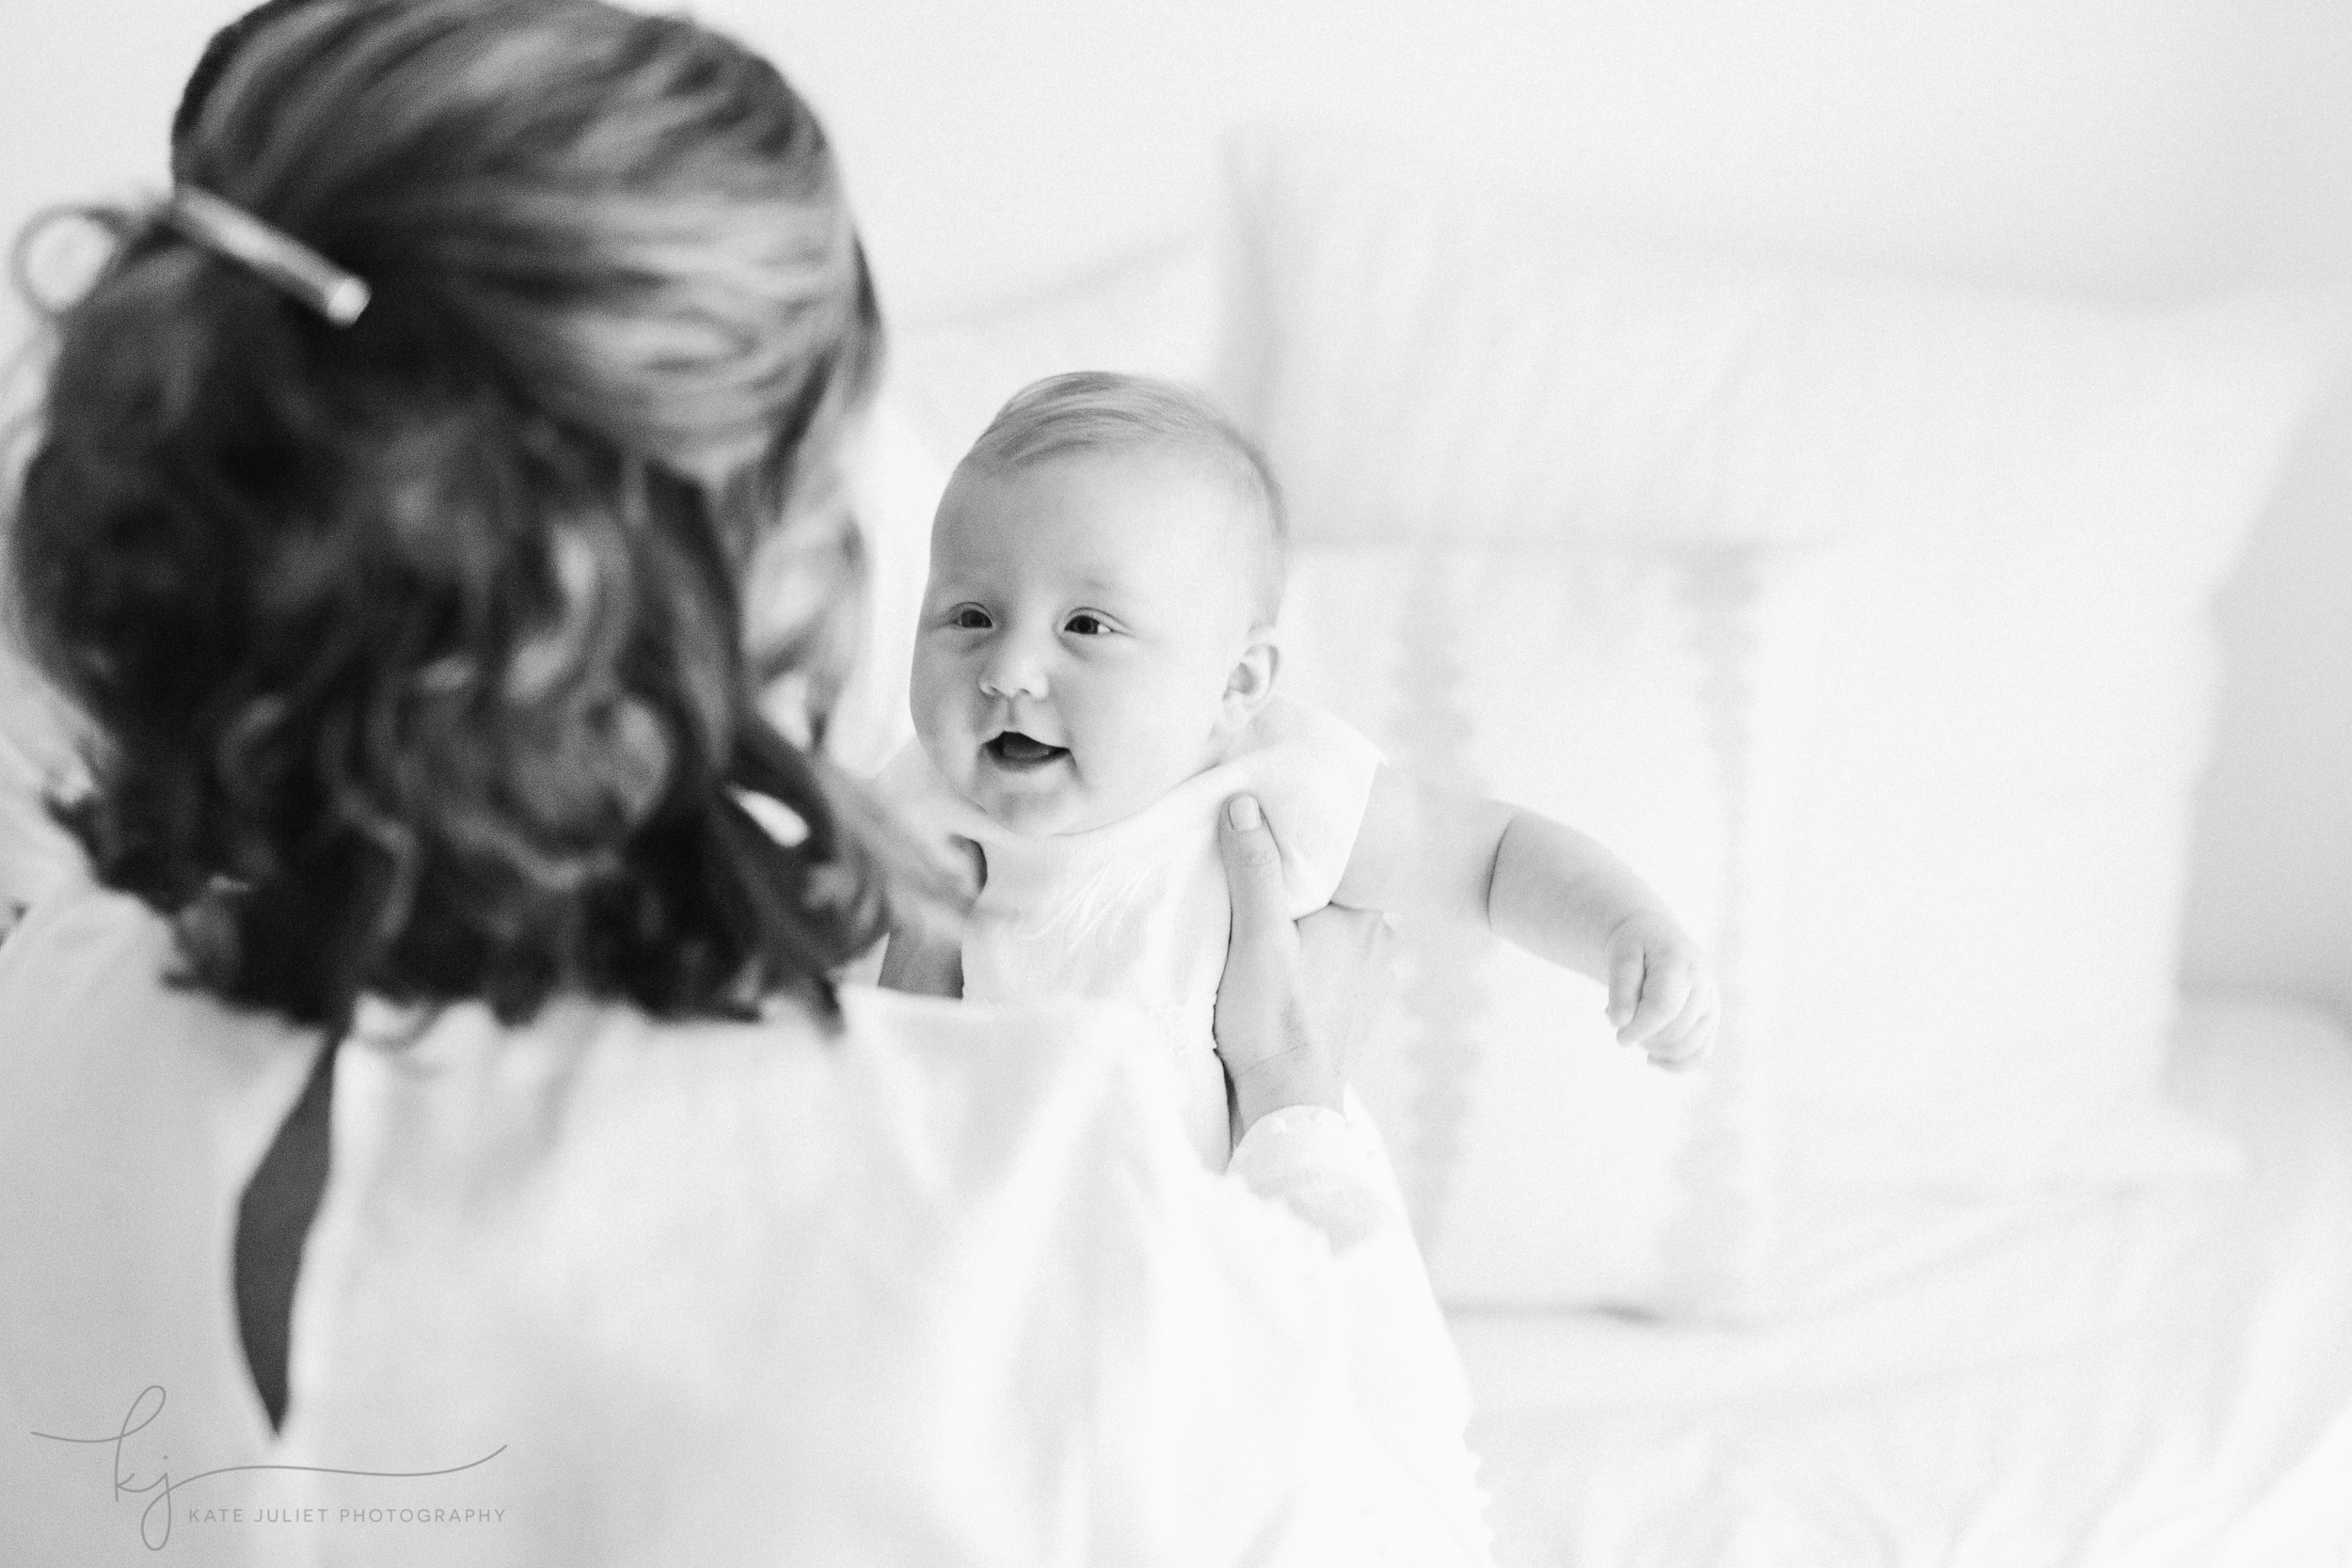 kate_juliet_photography_northern_va_baby_058646_wm-2.jpg